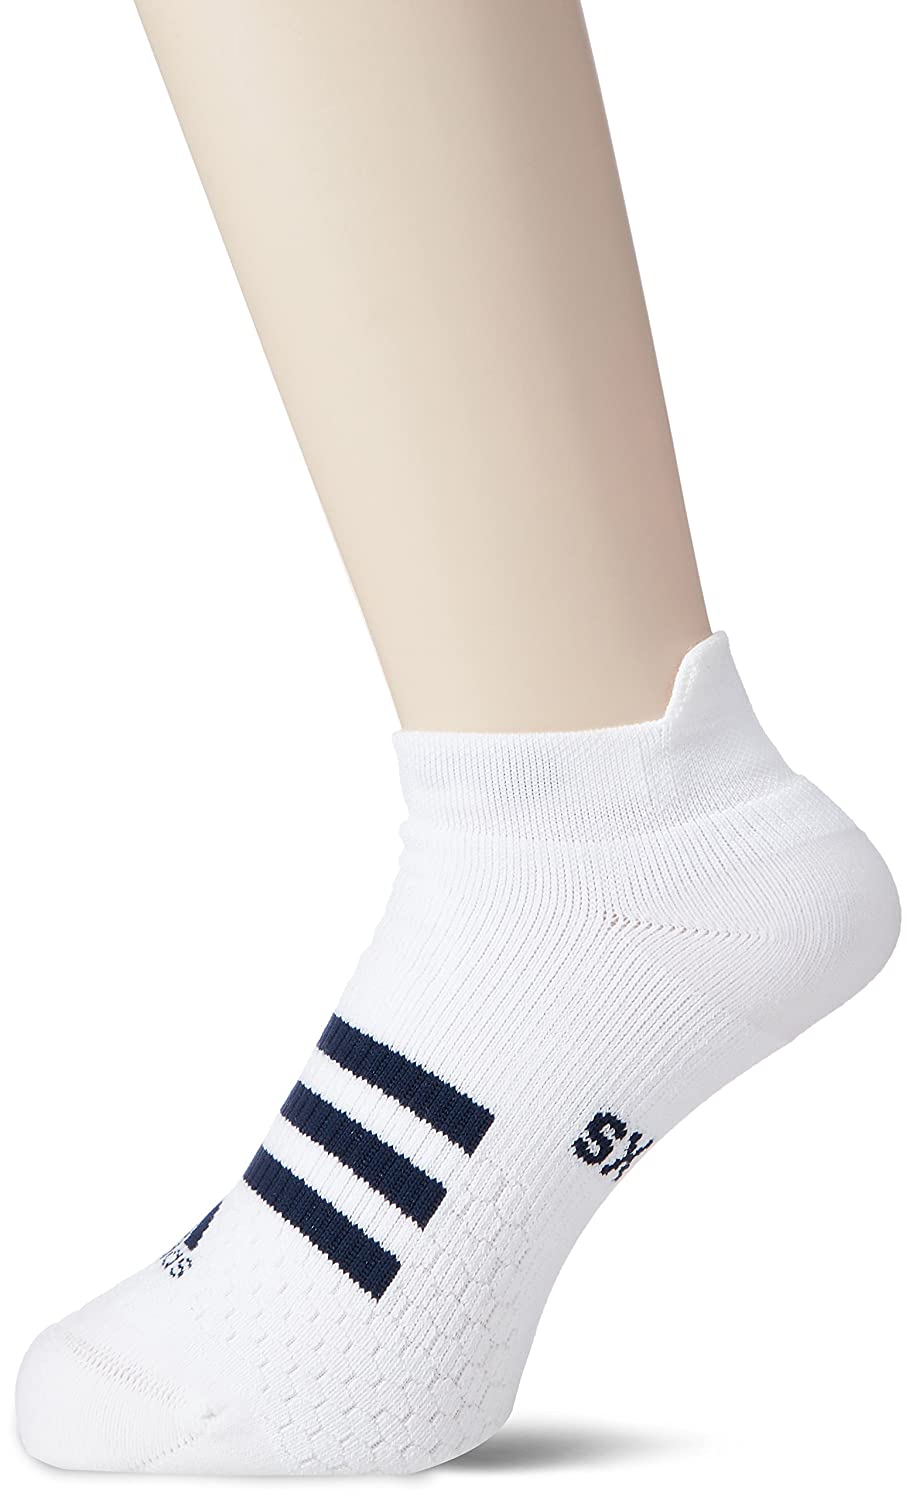 Hummel Indoor Socken lang Advanced, 8 Weiß  neonorange h  210599093 8 Advanced, ... 73cd96